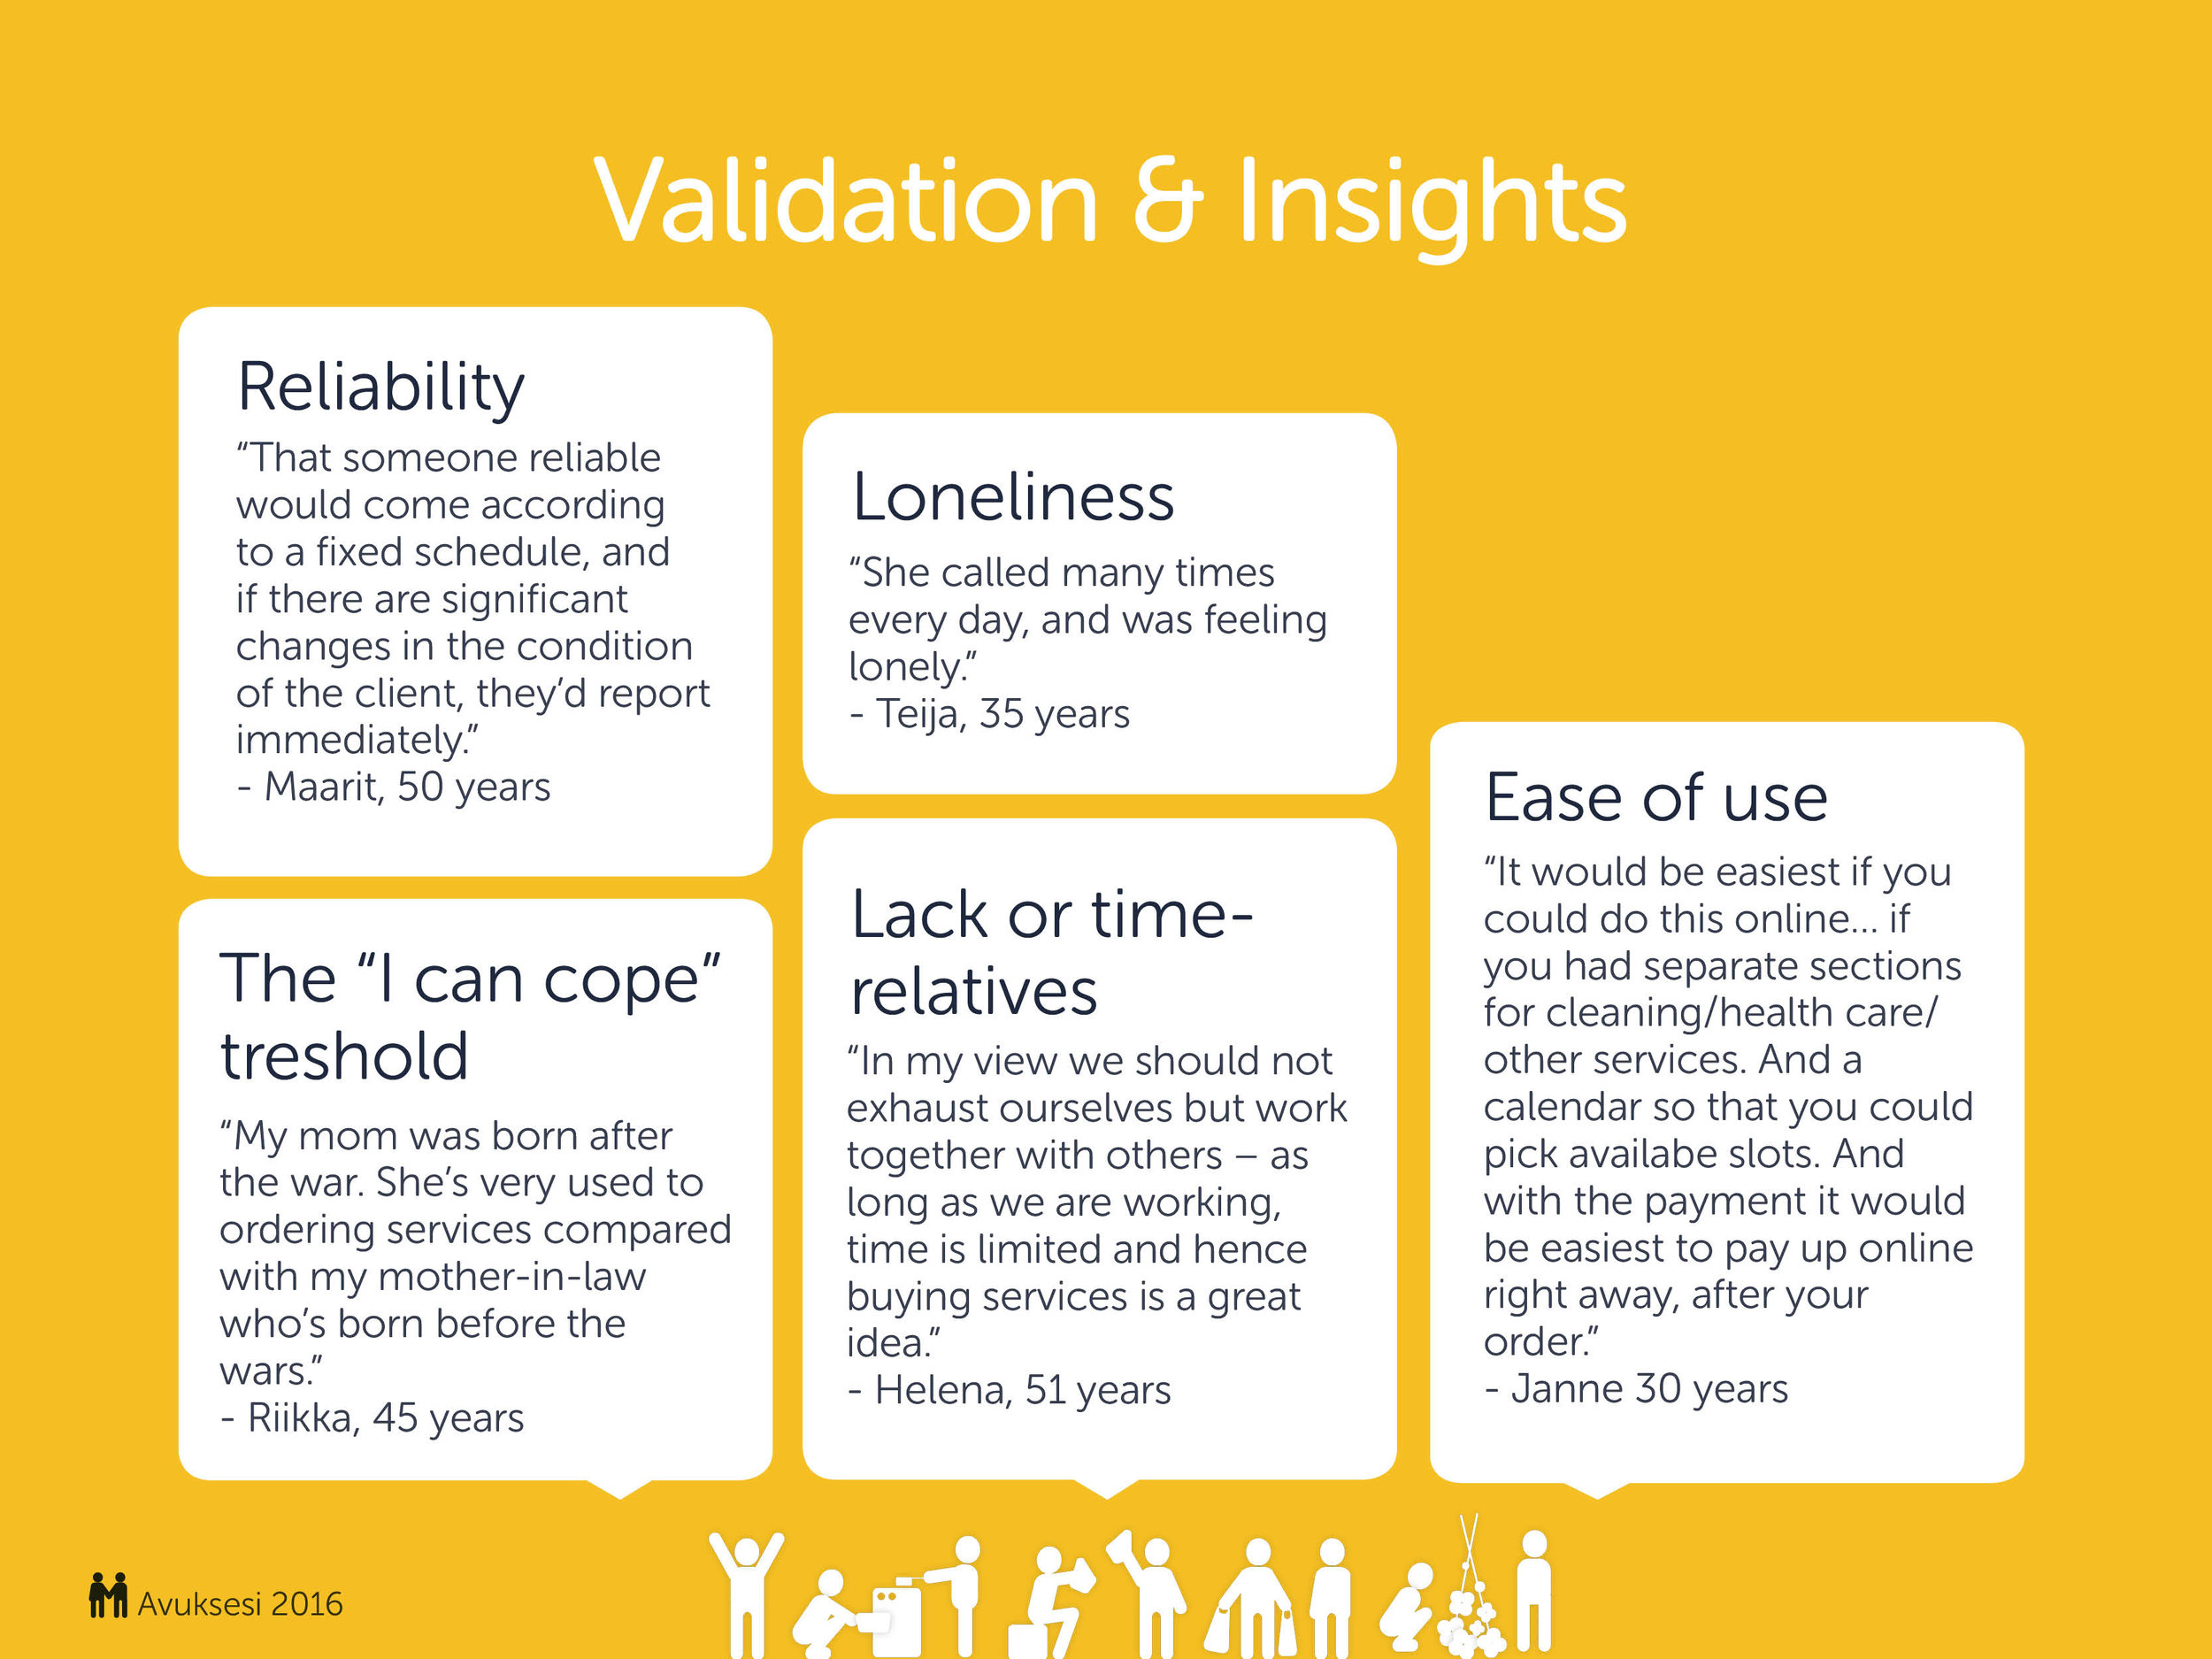 Image: Key validations into the service